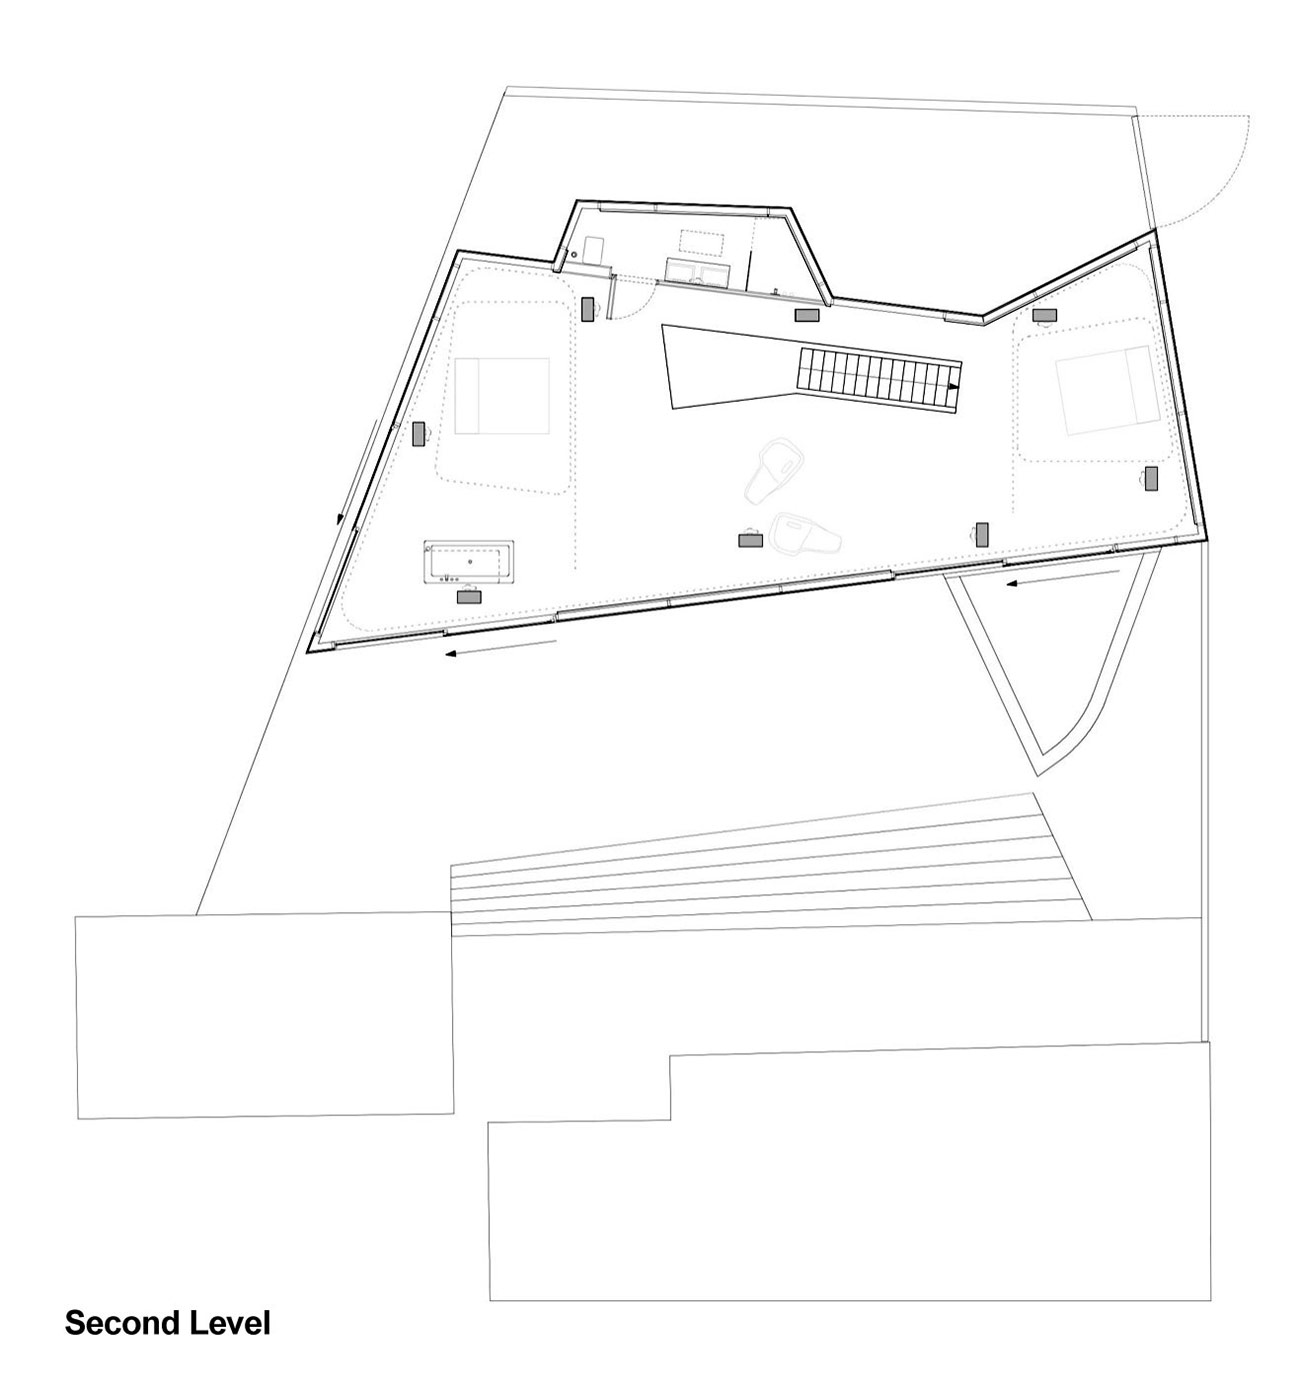 Second Level Plan, H House, Netherlands by Wiel Arets Architects